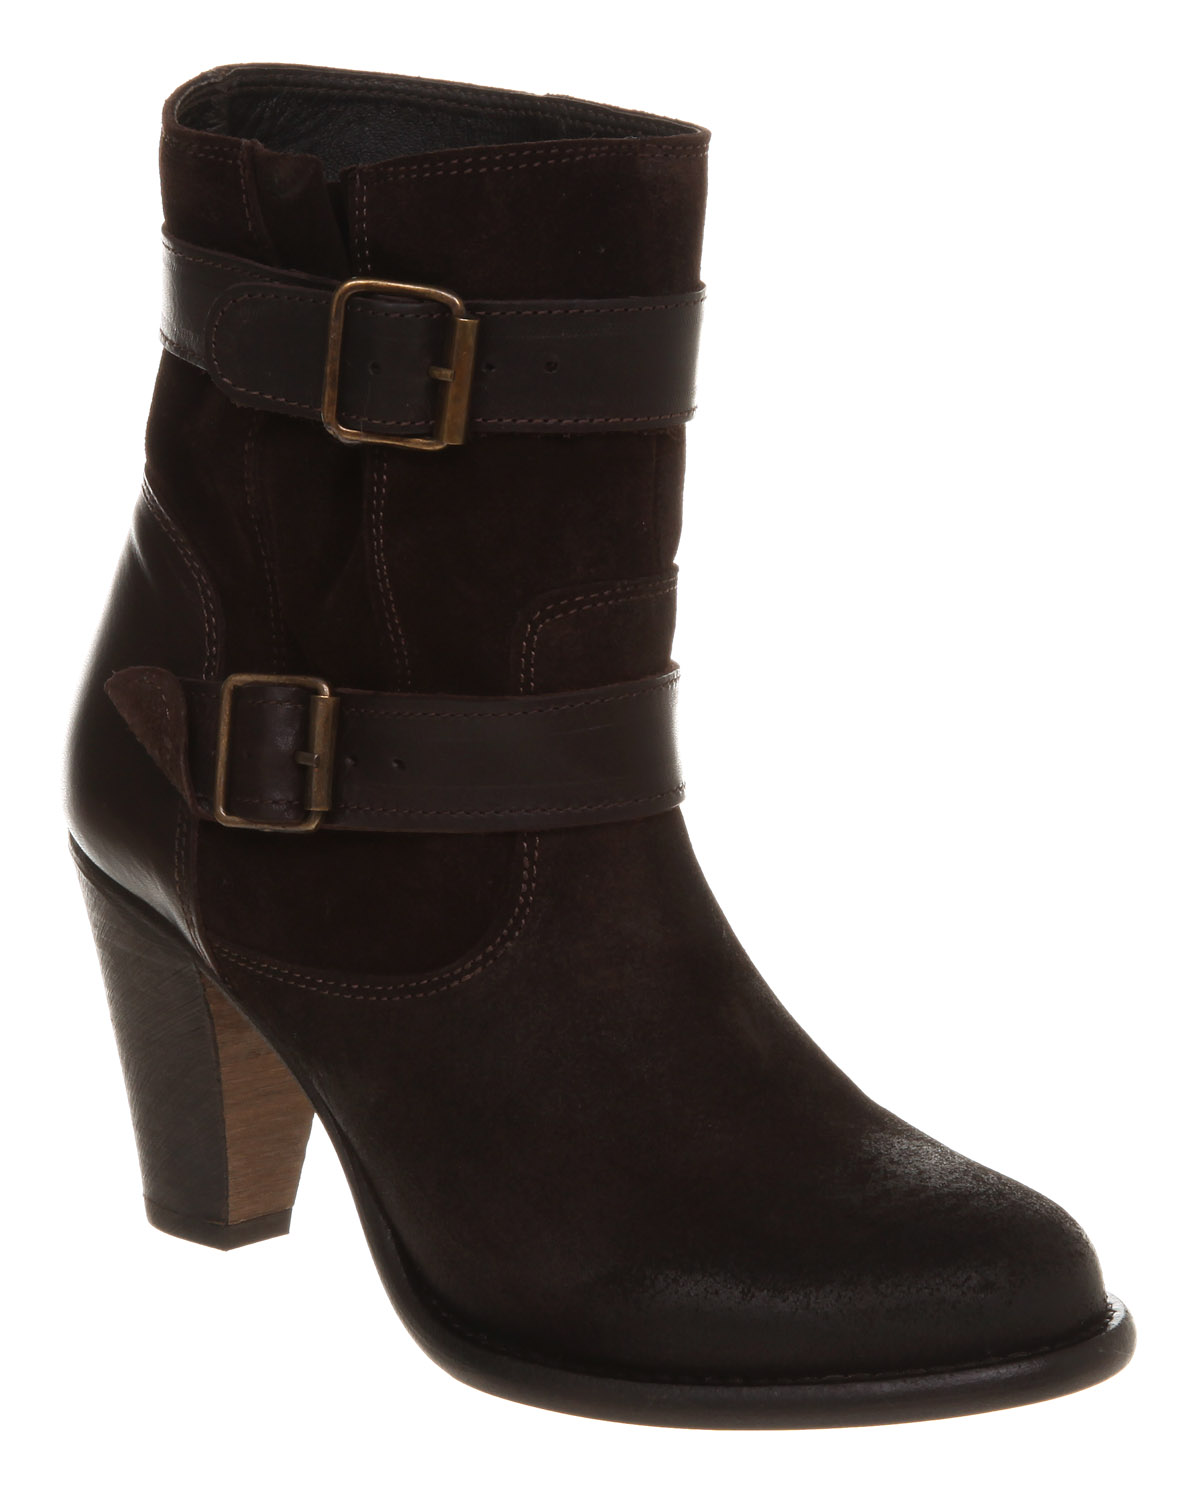 h by hudson oreti highstrap brown suede leather boots